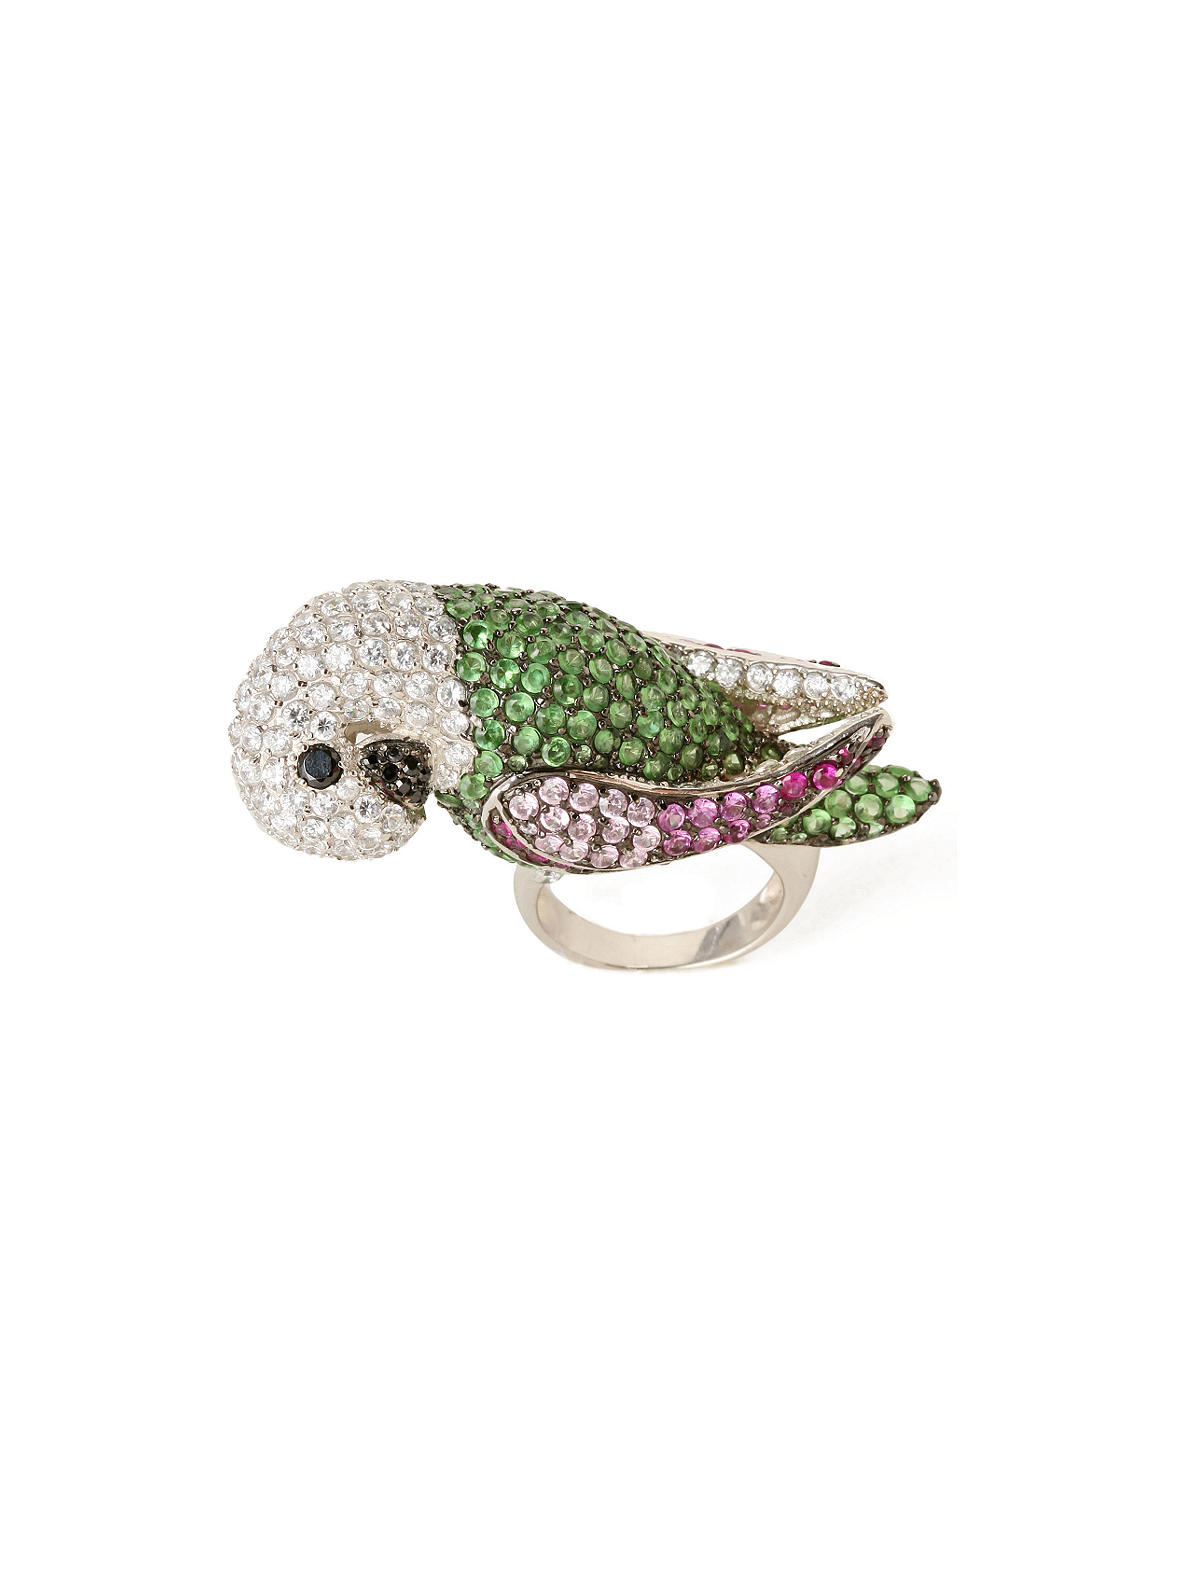 Jeweled Parrot Ring - Anthropologie.com :  jewel parrot jewelry ring